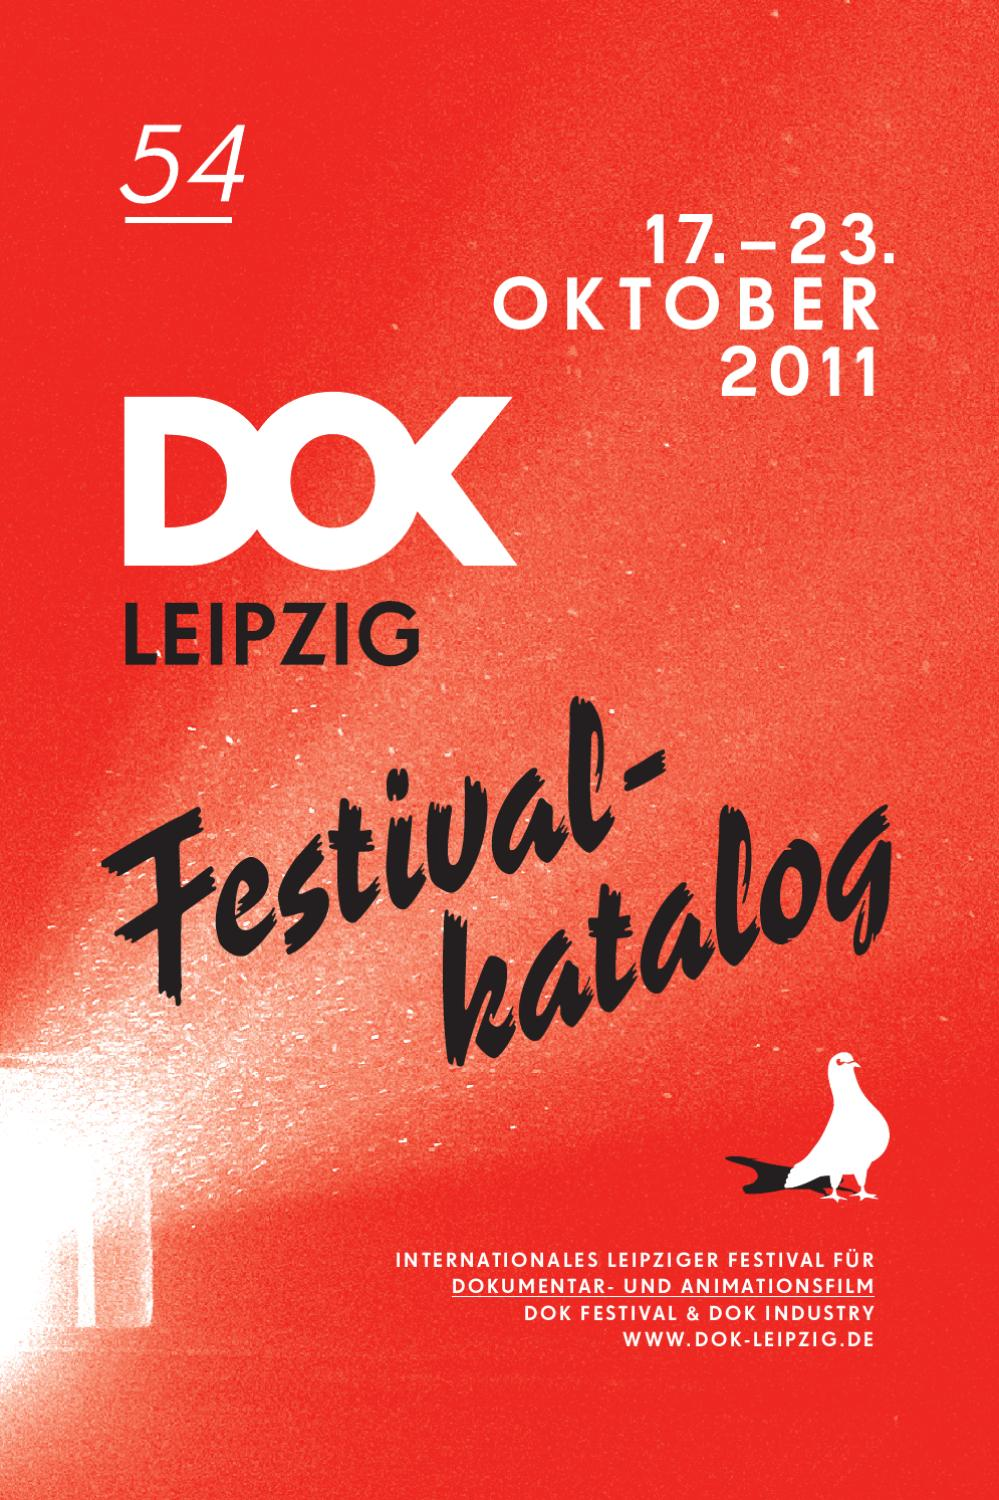 DOK Leipzig 2011 Catalogue by VISIONAUTEN - issuu